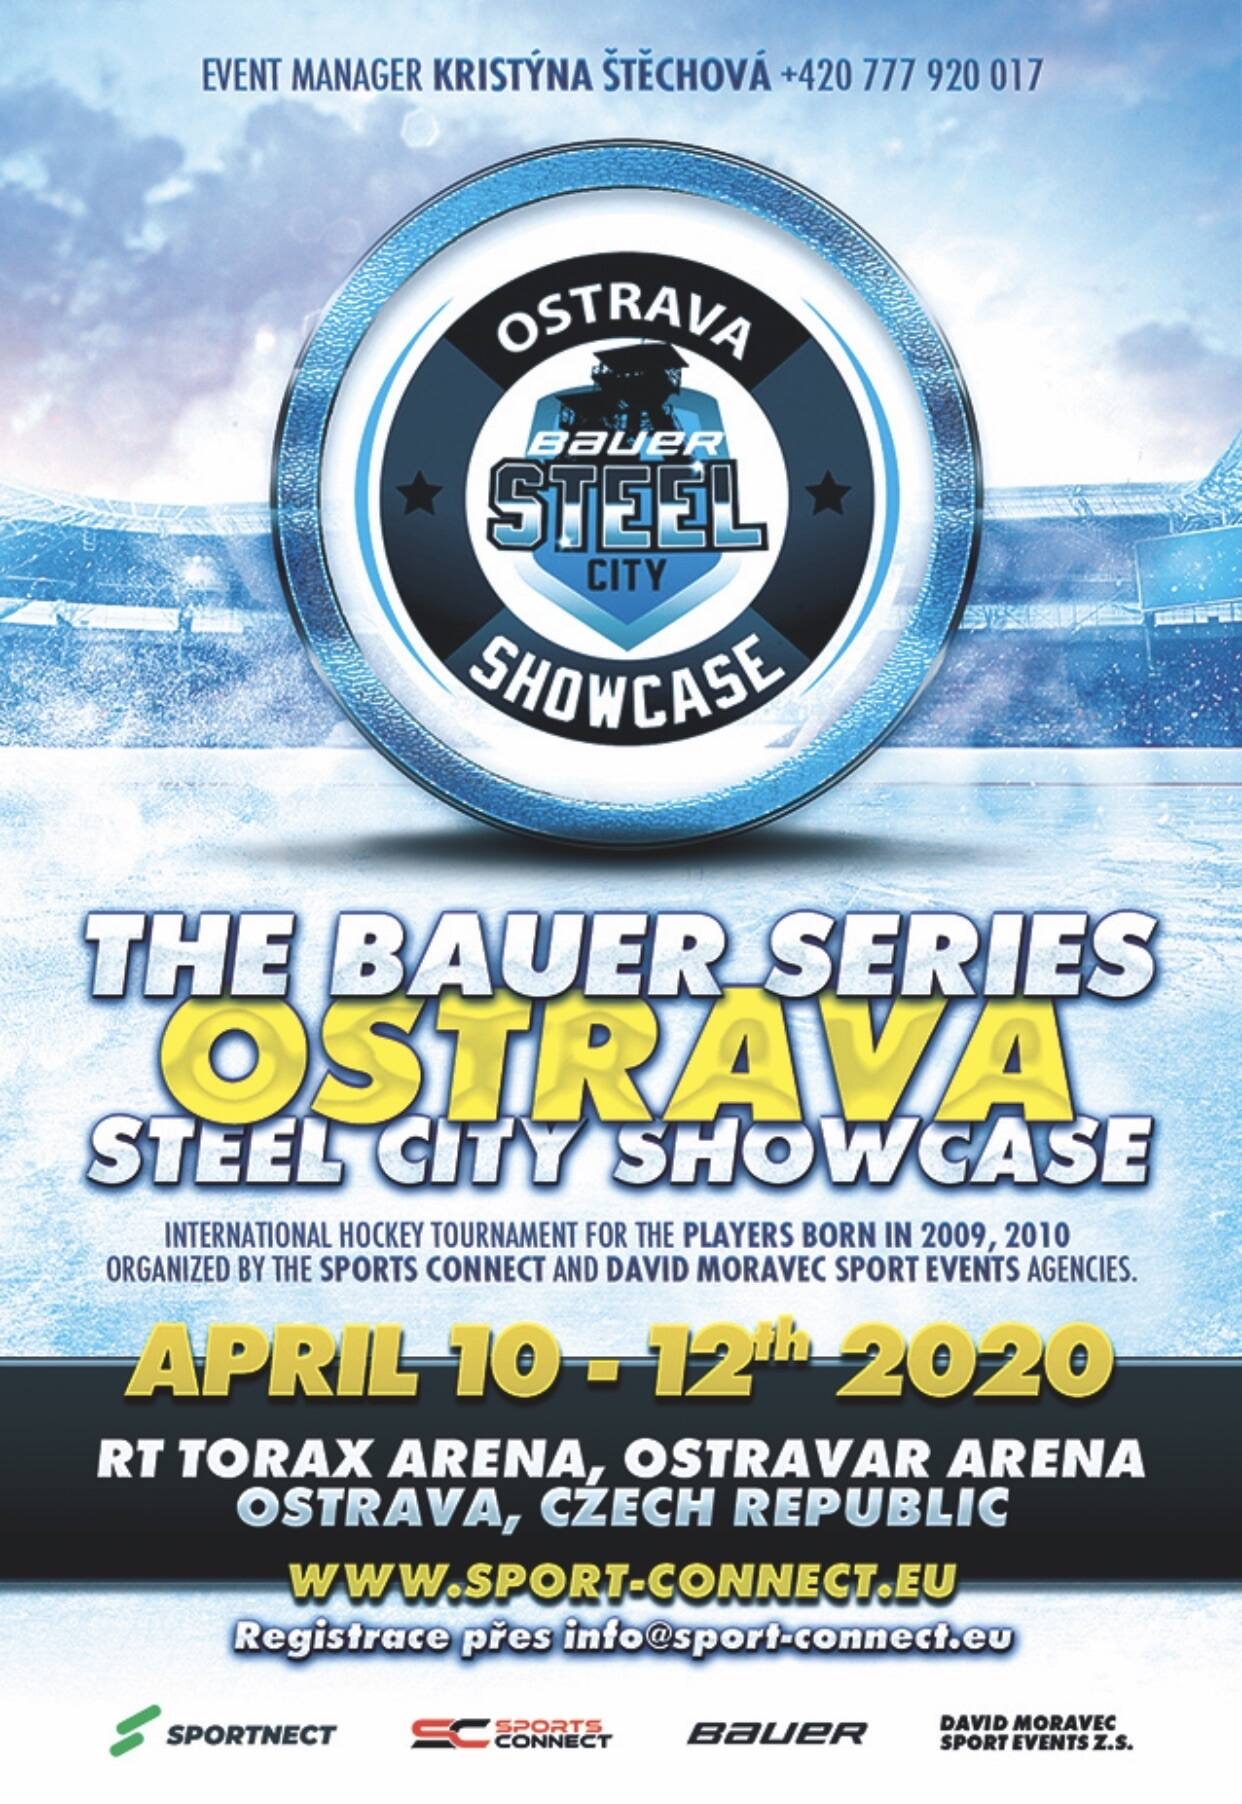 Bauer Showcase - Steel City Ostrava